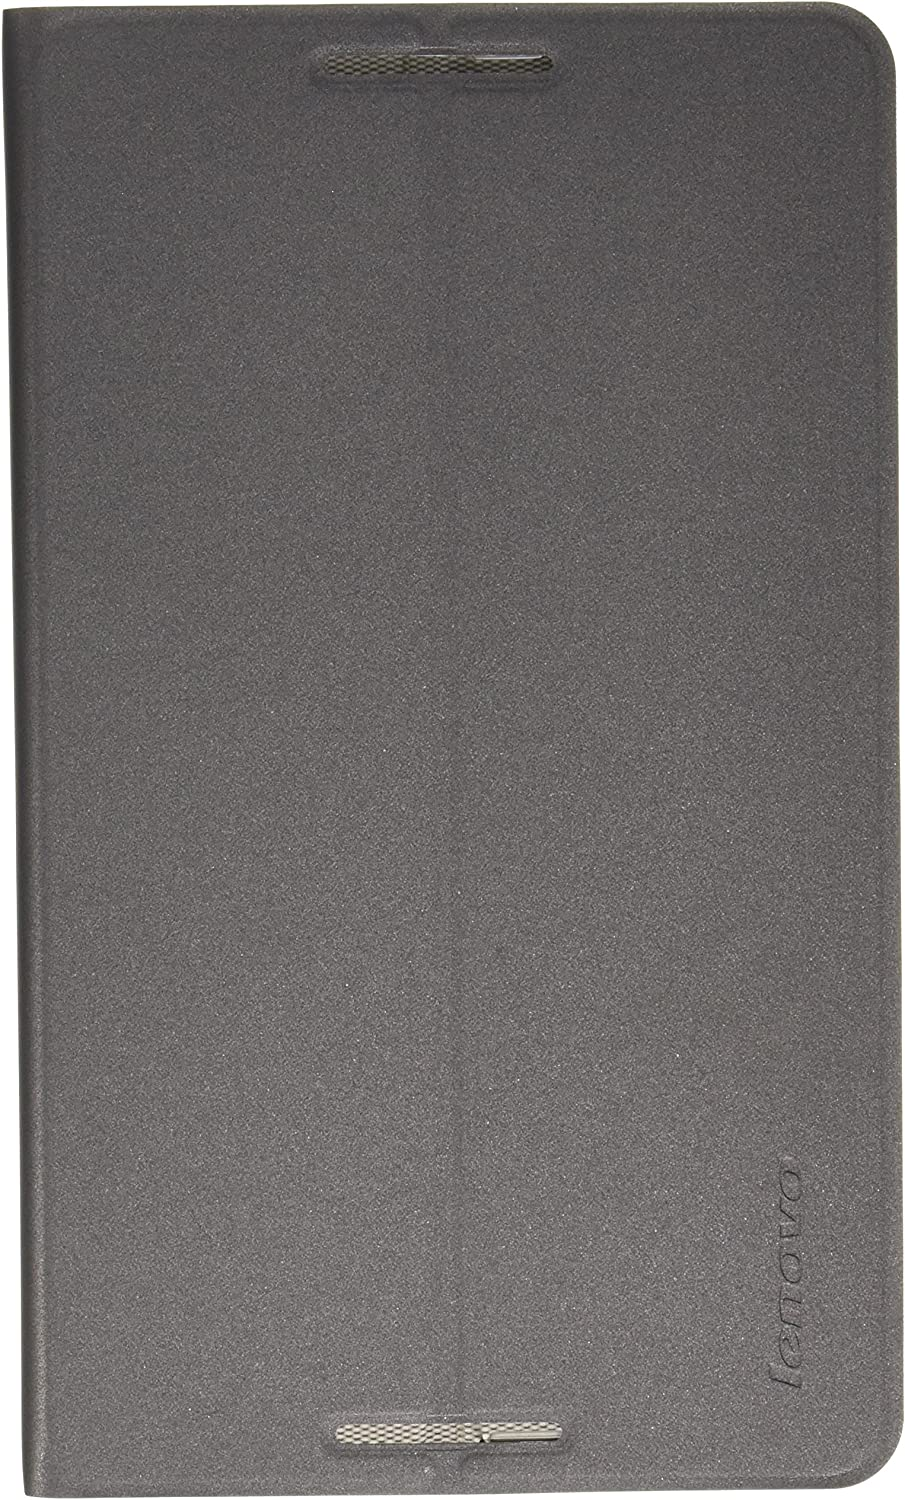 Lenovo TAB2 A8-50 Folio Case and Film-Gray (ZG38C00224)